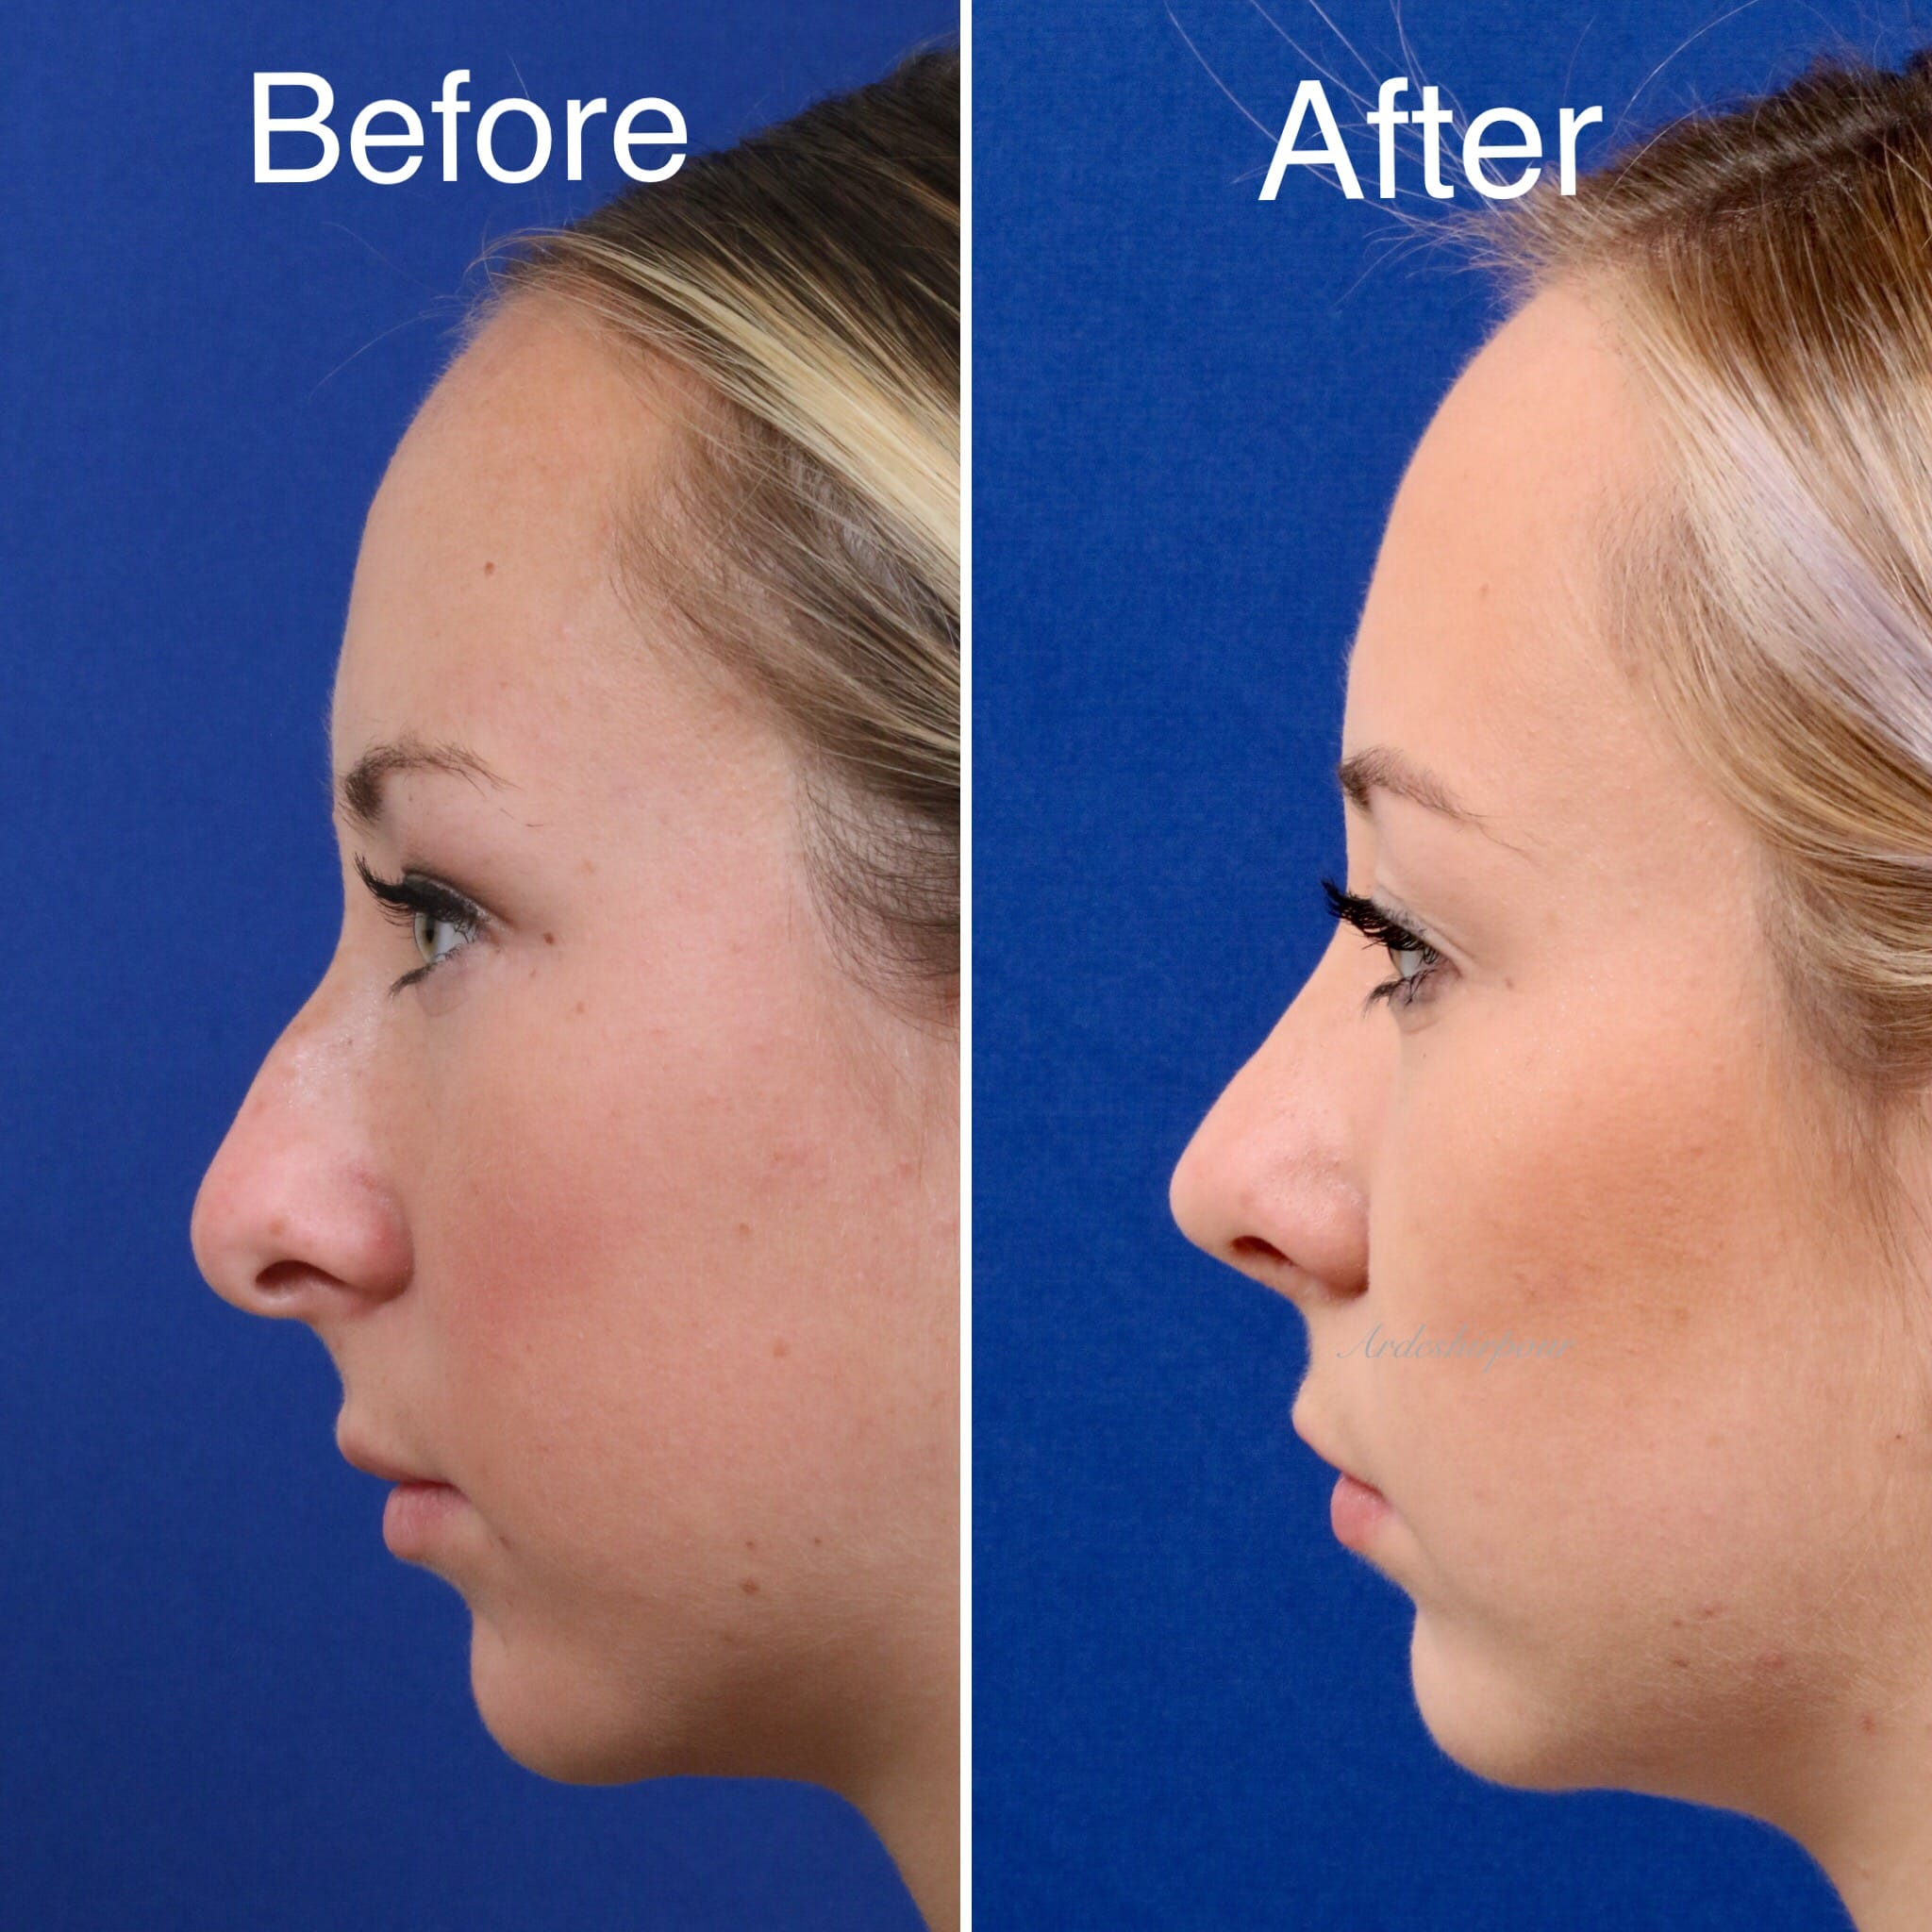 Rhinoplasty in Glendale